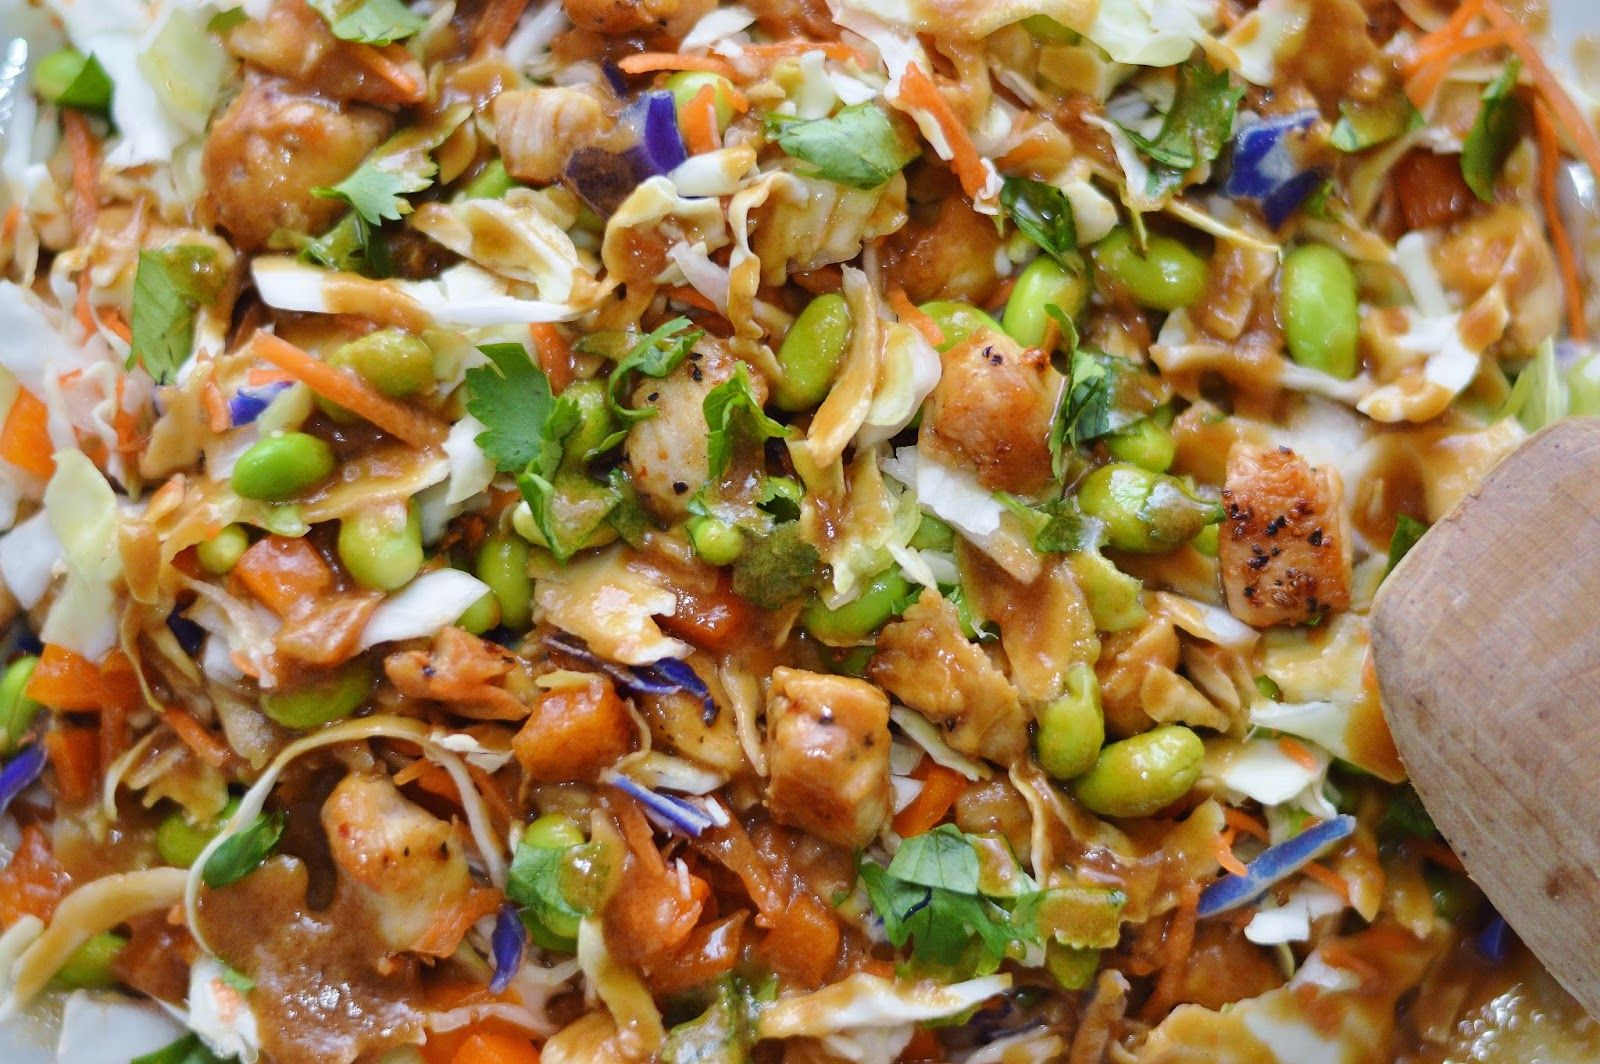 Asian Chopped Chicken Salad with Peanut Dressing  1 (16 oz) bag of coleslaw mix 1 cup cooked chicken 1/2 cup chopped bell pepper (any color) 1/2 cup cooked edamame 1/4 cup chopped fresh cilantro  For the dressing 1 tablespoon creamy natural peanut butter 2 tablespoons honey 2 tablespoons soy sauce 2 tablespoons rice vinegar 1/2 teaspoon sesame oil (or more to taste) 1 tablespoon olive oil